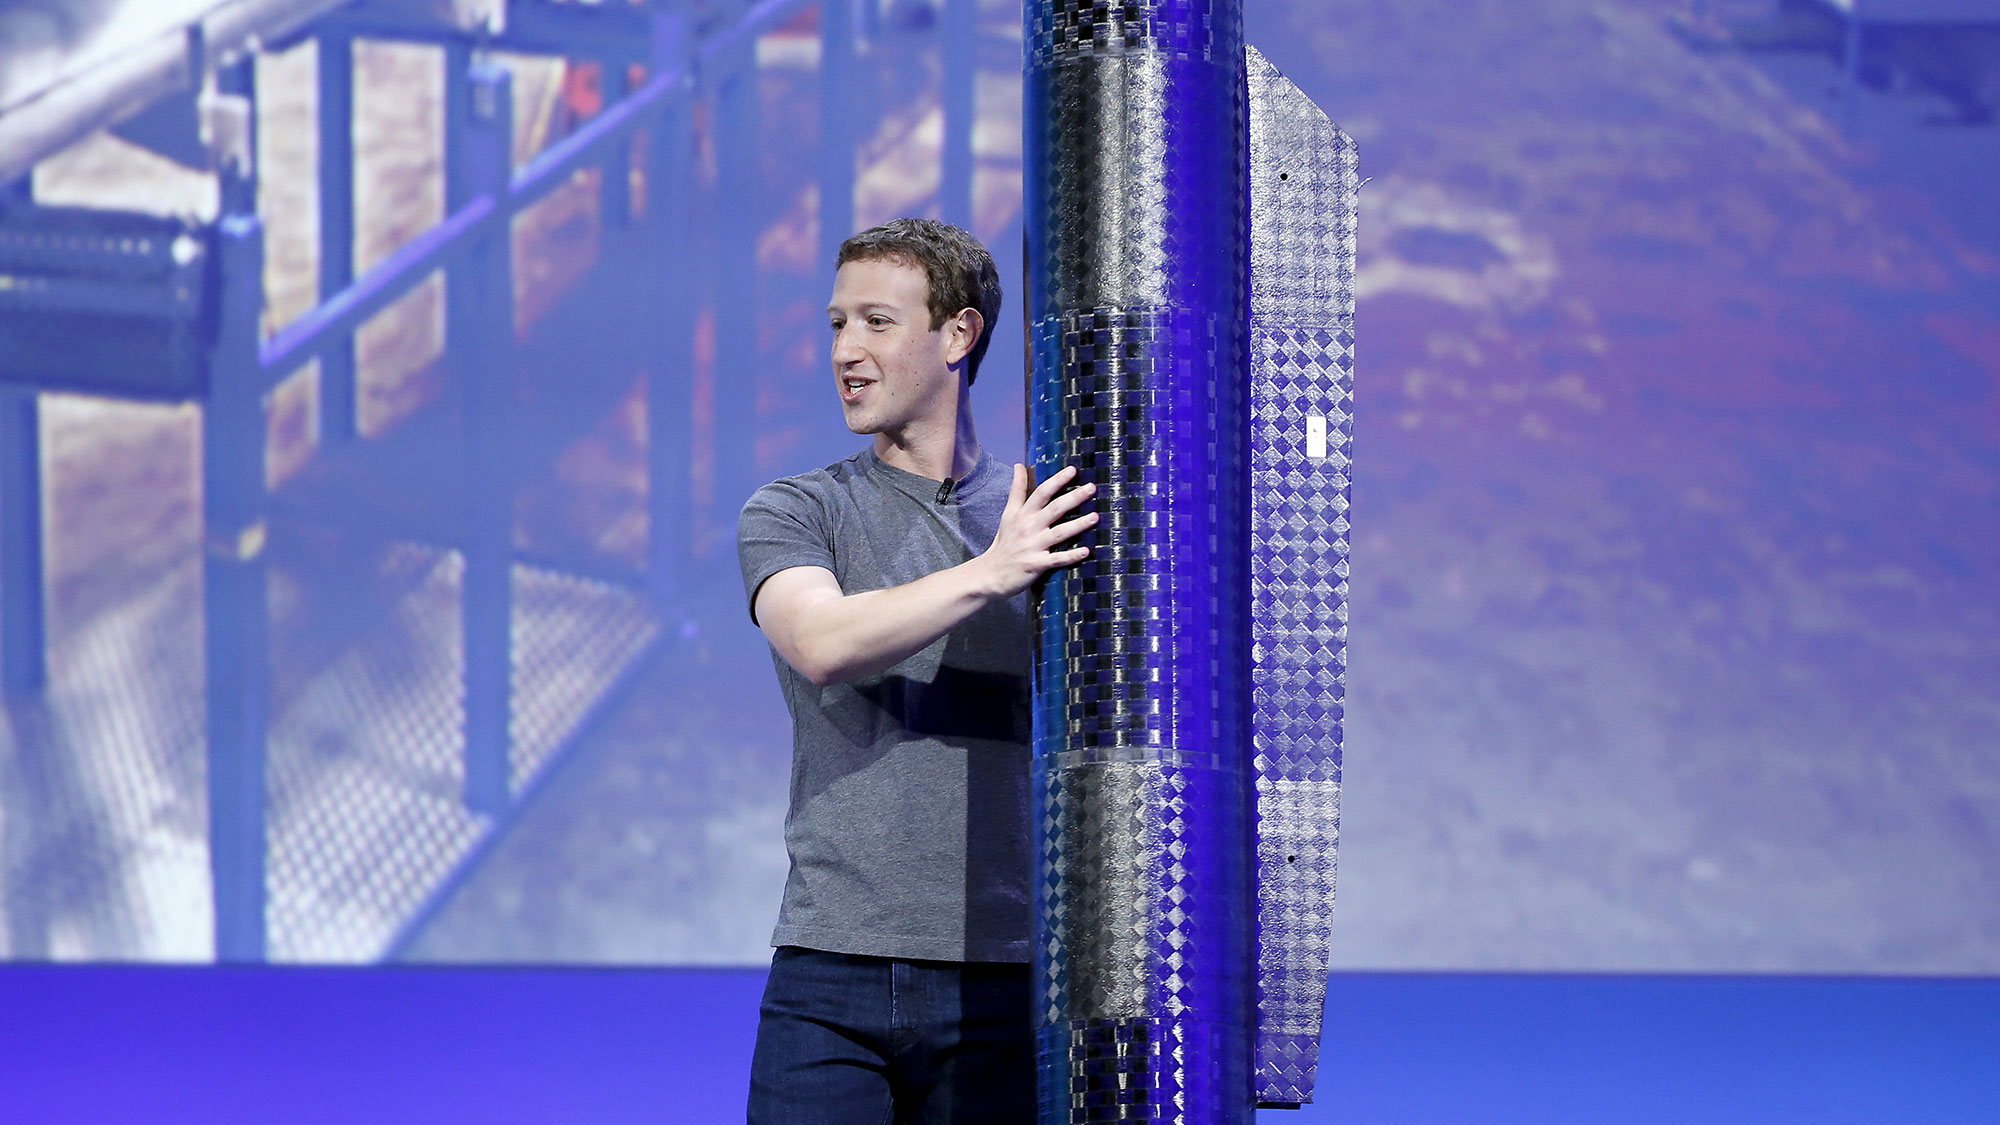 Facebook CEO Mark Zuckerberg holds a propeller pod of the solar-powered Aquila drone on stage during a keynote at the Facebook F8 conference in San Francisco, California April 12, 2016. REUTERS/Stephen Lam